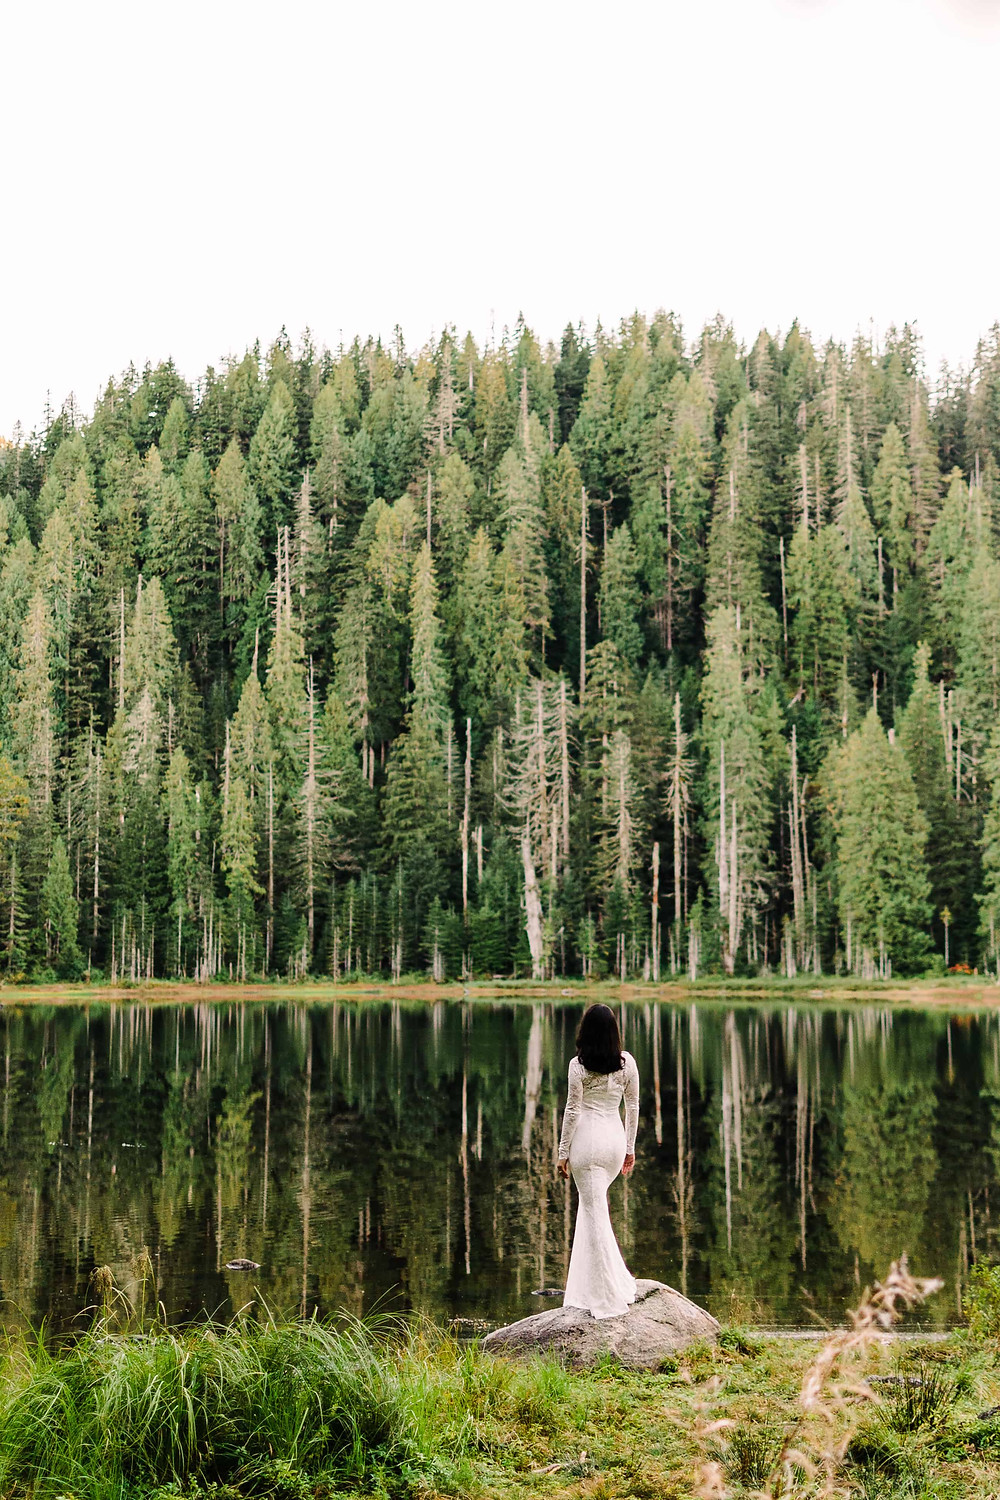 A thin, latina bride with black hair stands at the edge of a lake, with trees reflecting on the horizon line